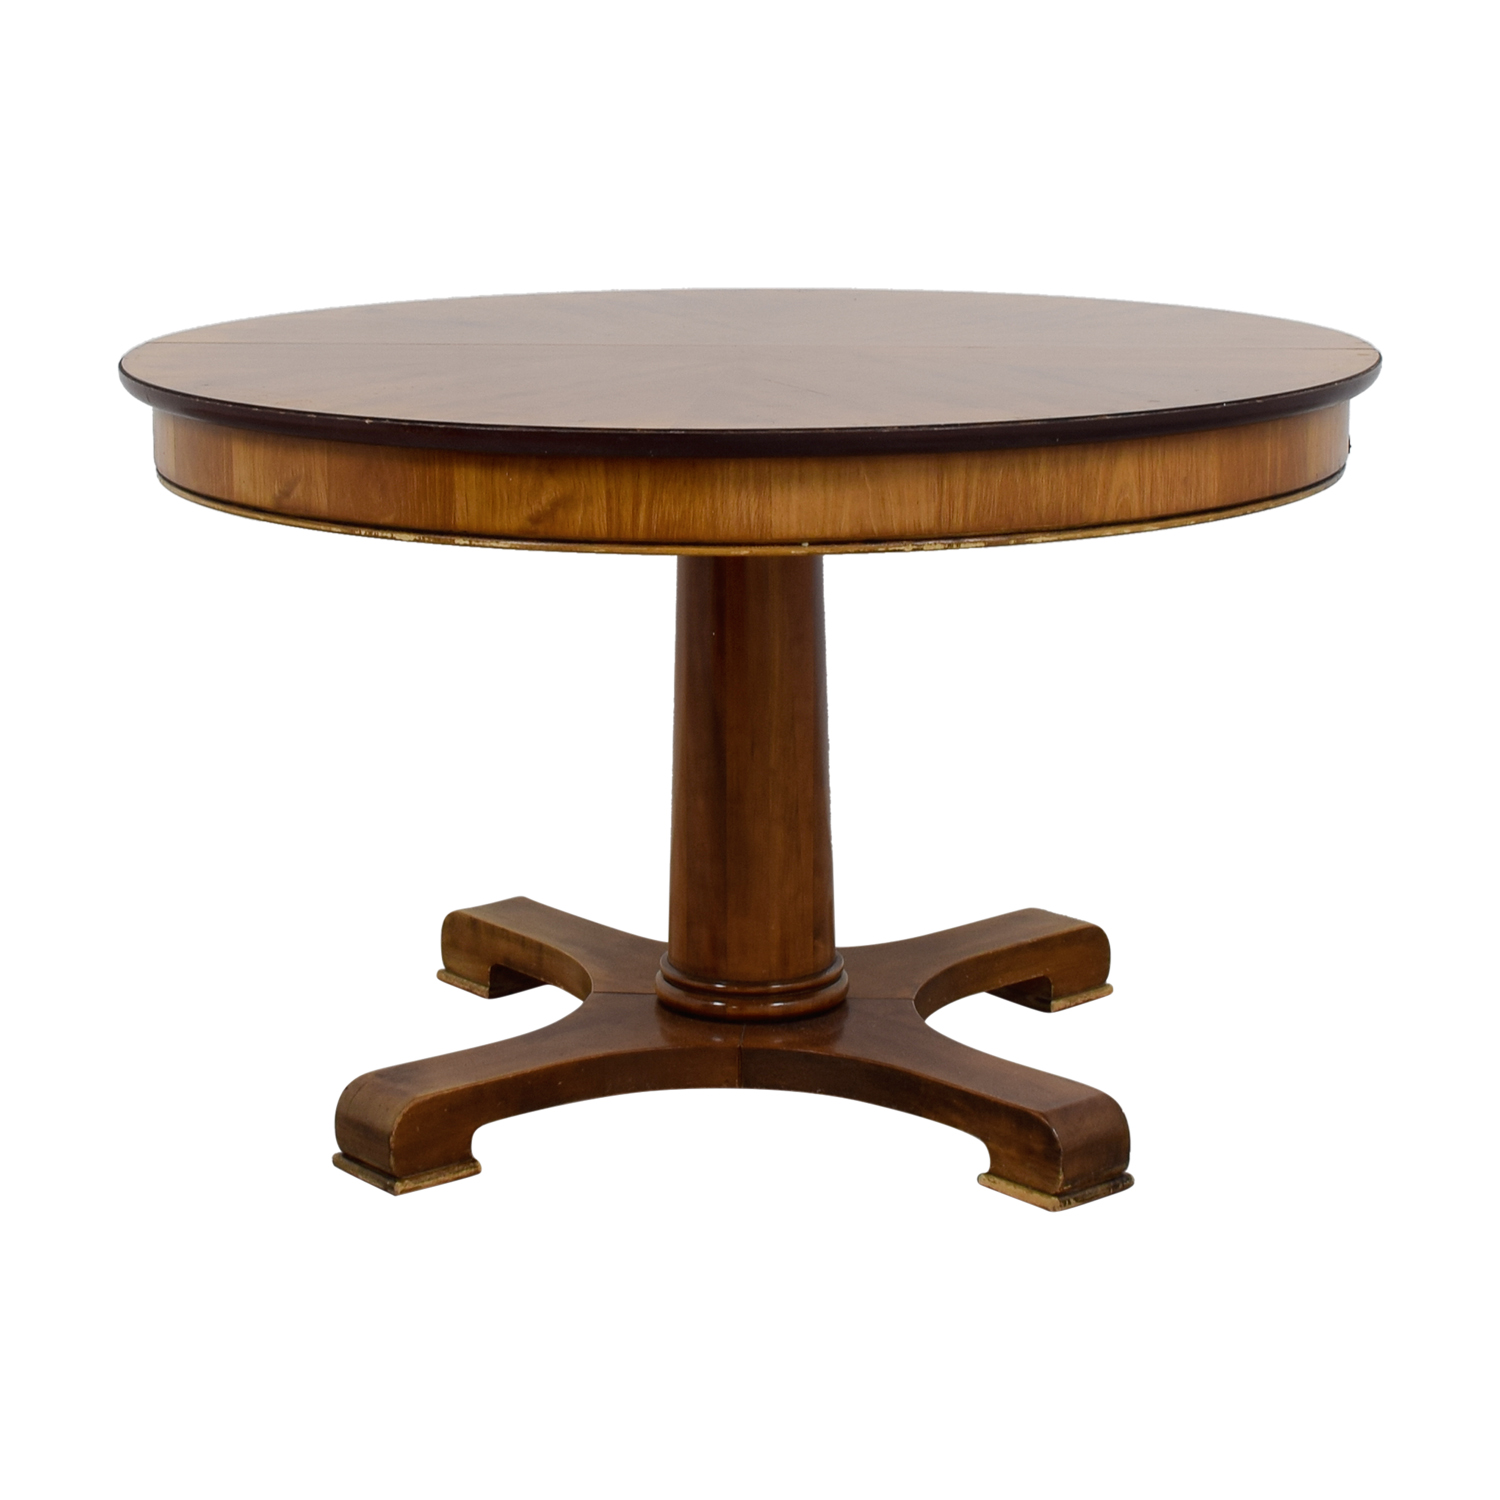 buy Grange Grange Expandable Wood Dining Table with Protective Cover online